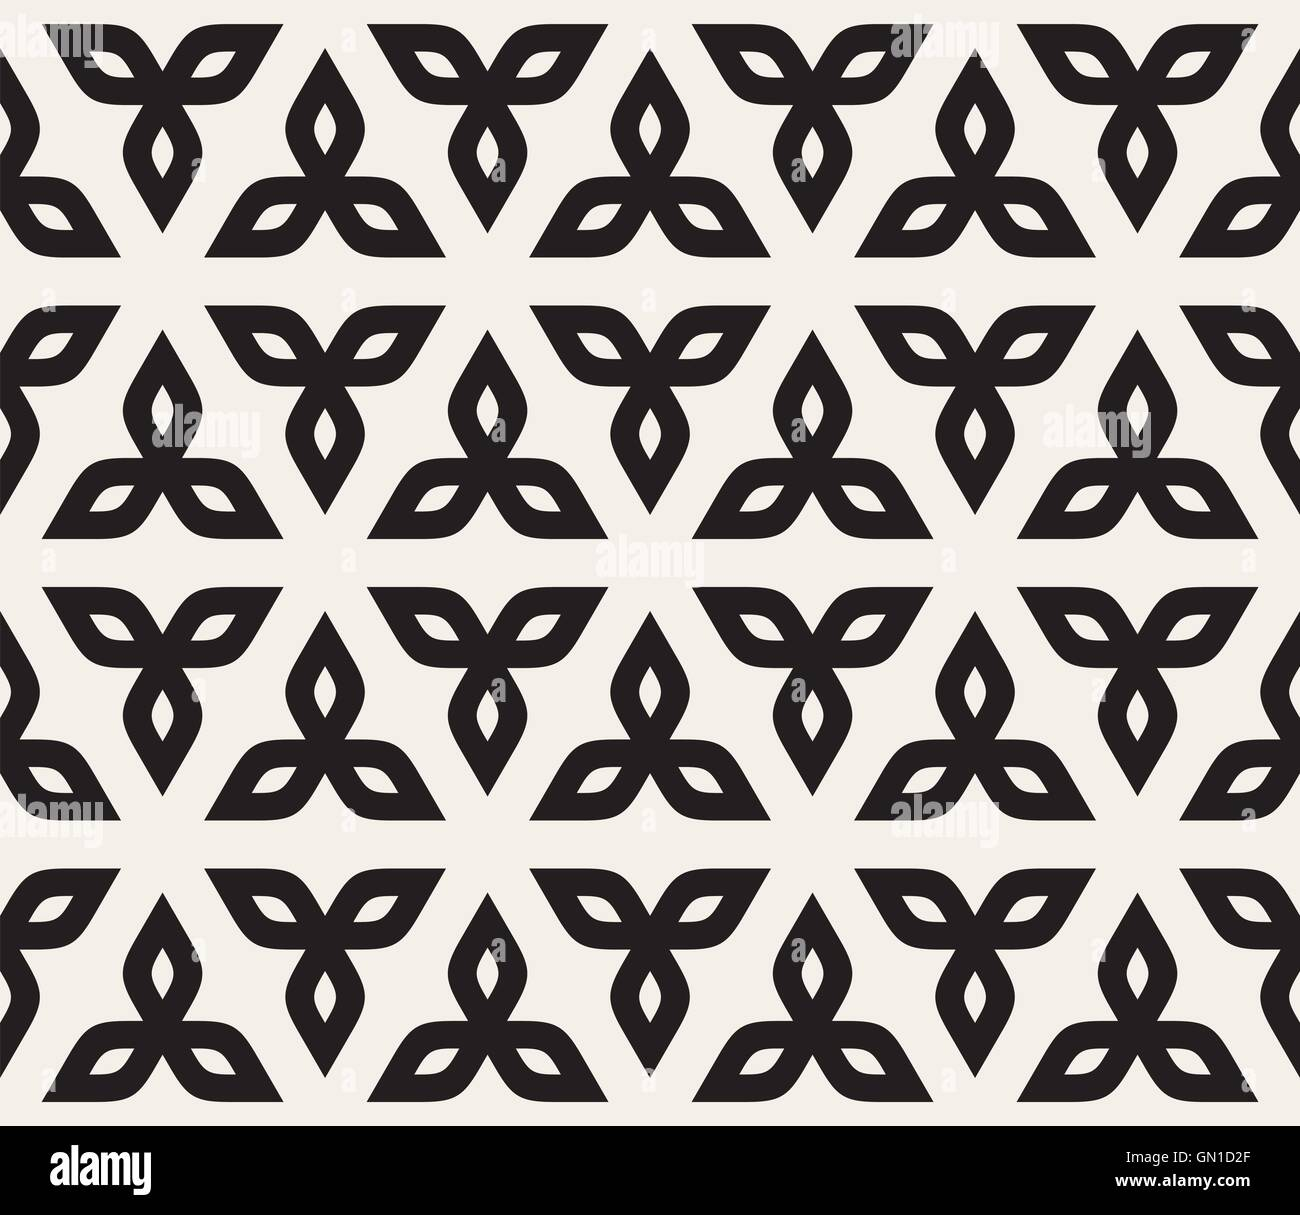 Vector Seamless Black And White Floral Rounded Triangle Petals Pattern - Stock Vector